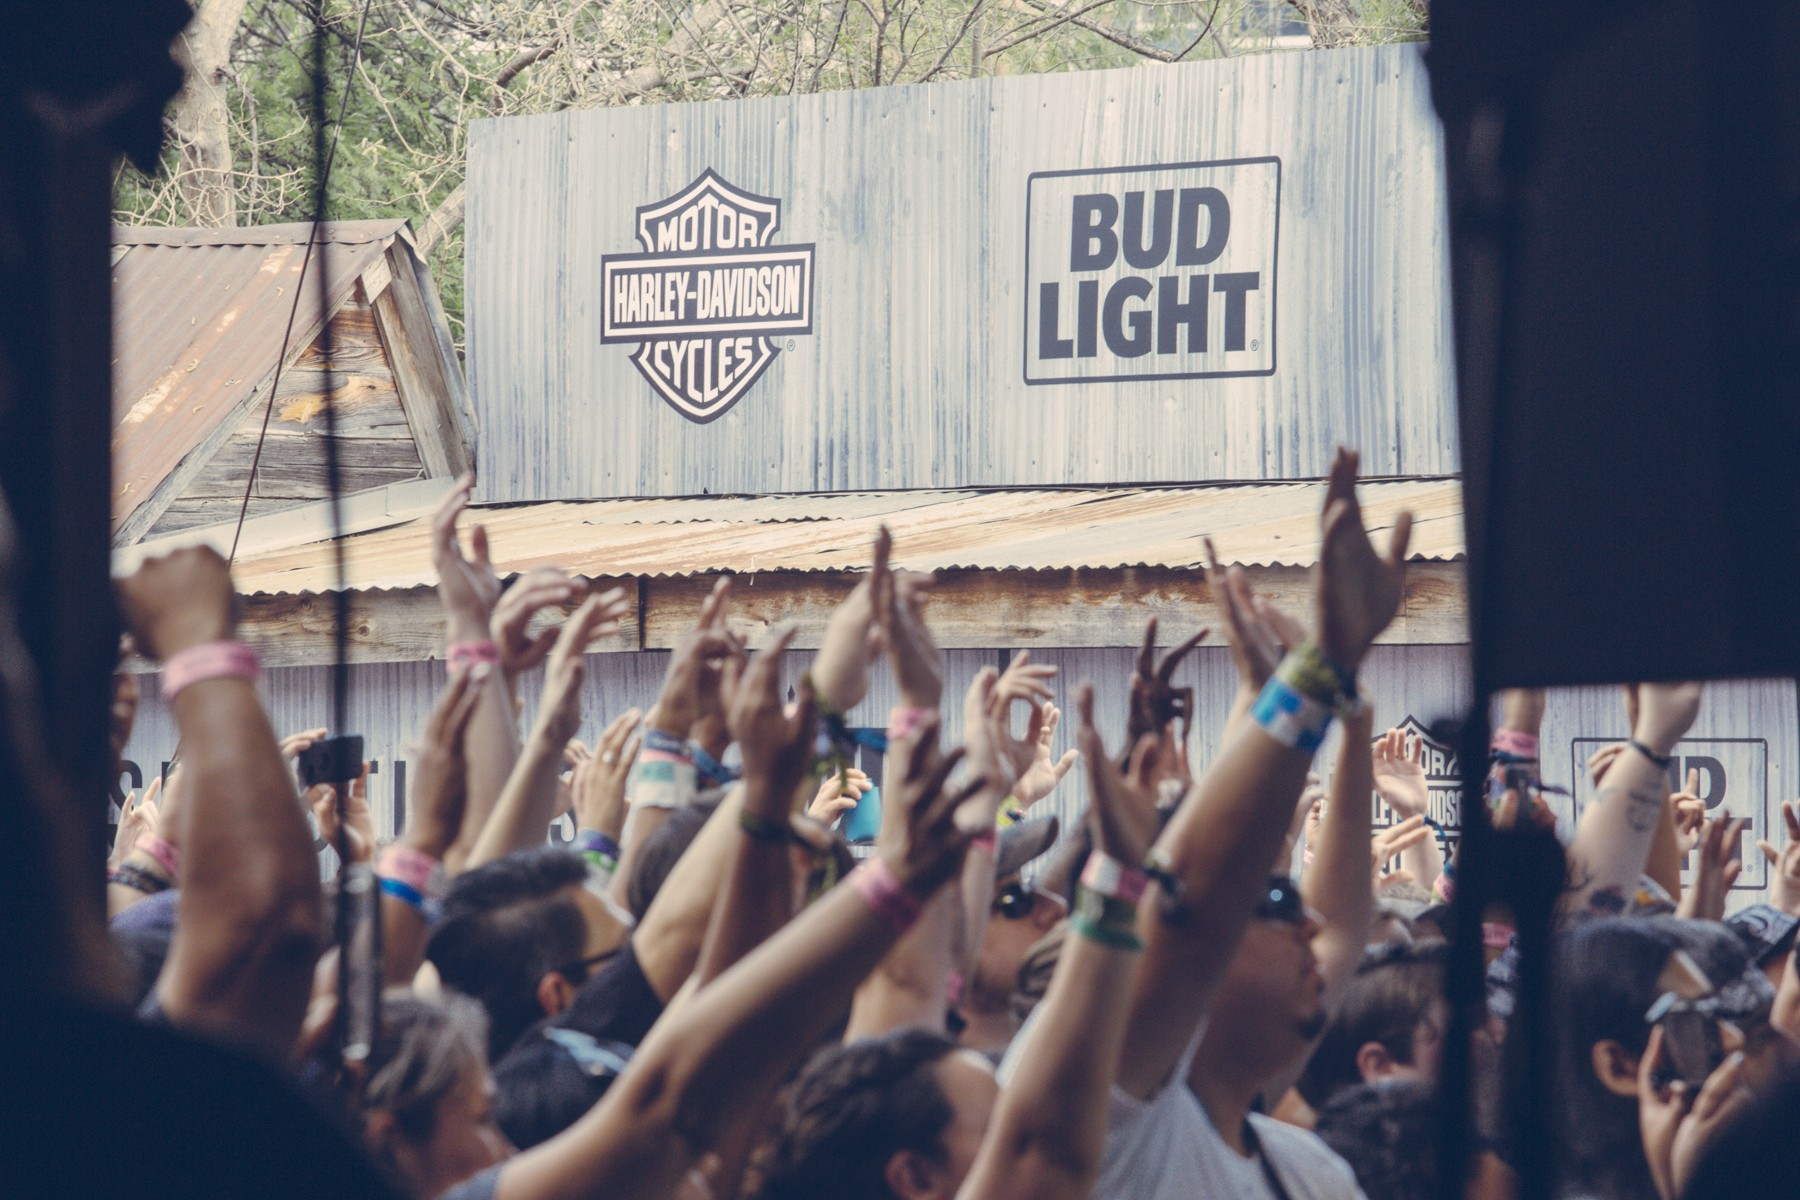 The crowd at Stubb's, March 18, 2016